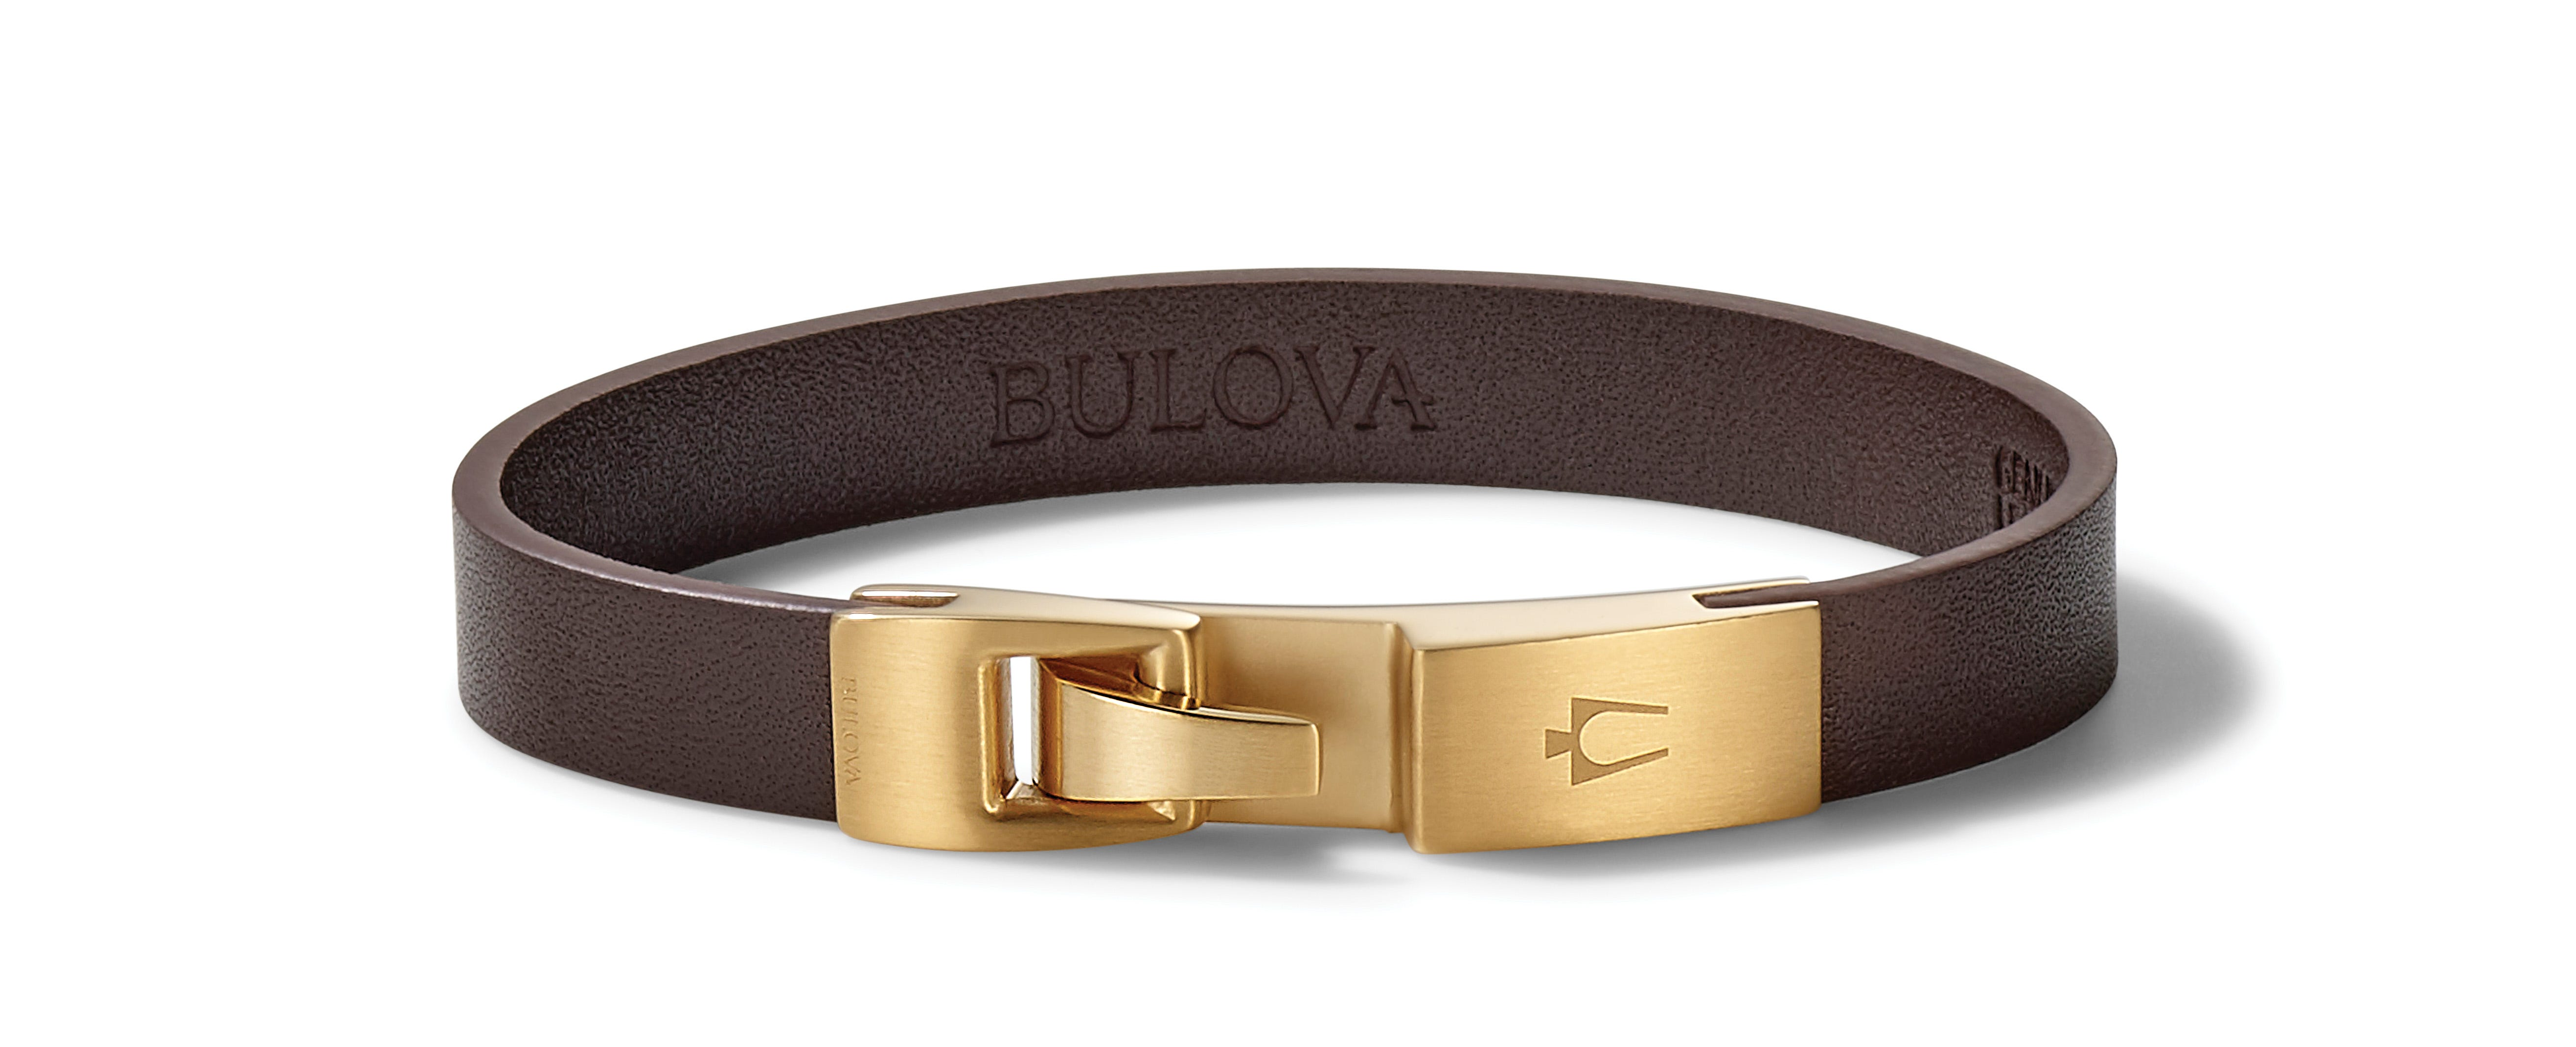 Bulova Classic Black & Red Leather Bracelet with Stainless Steel Clasp J97B004L